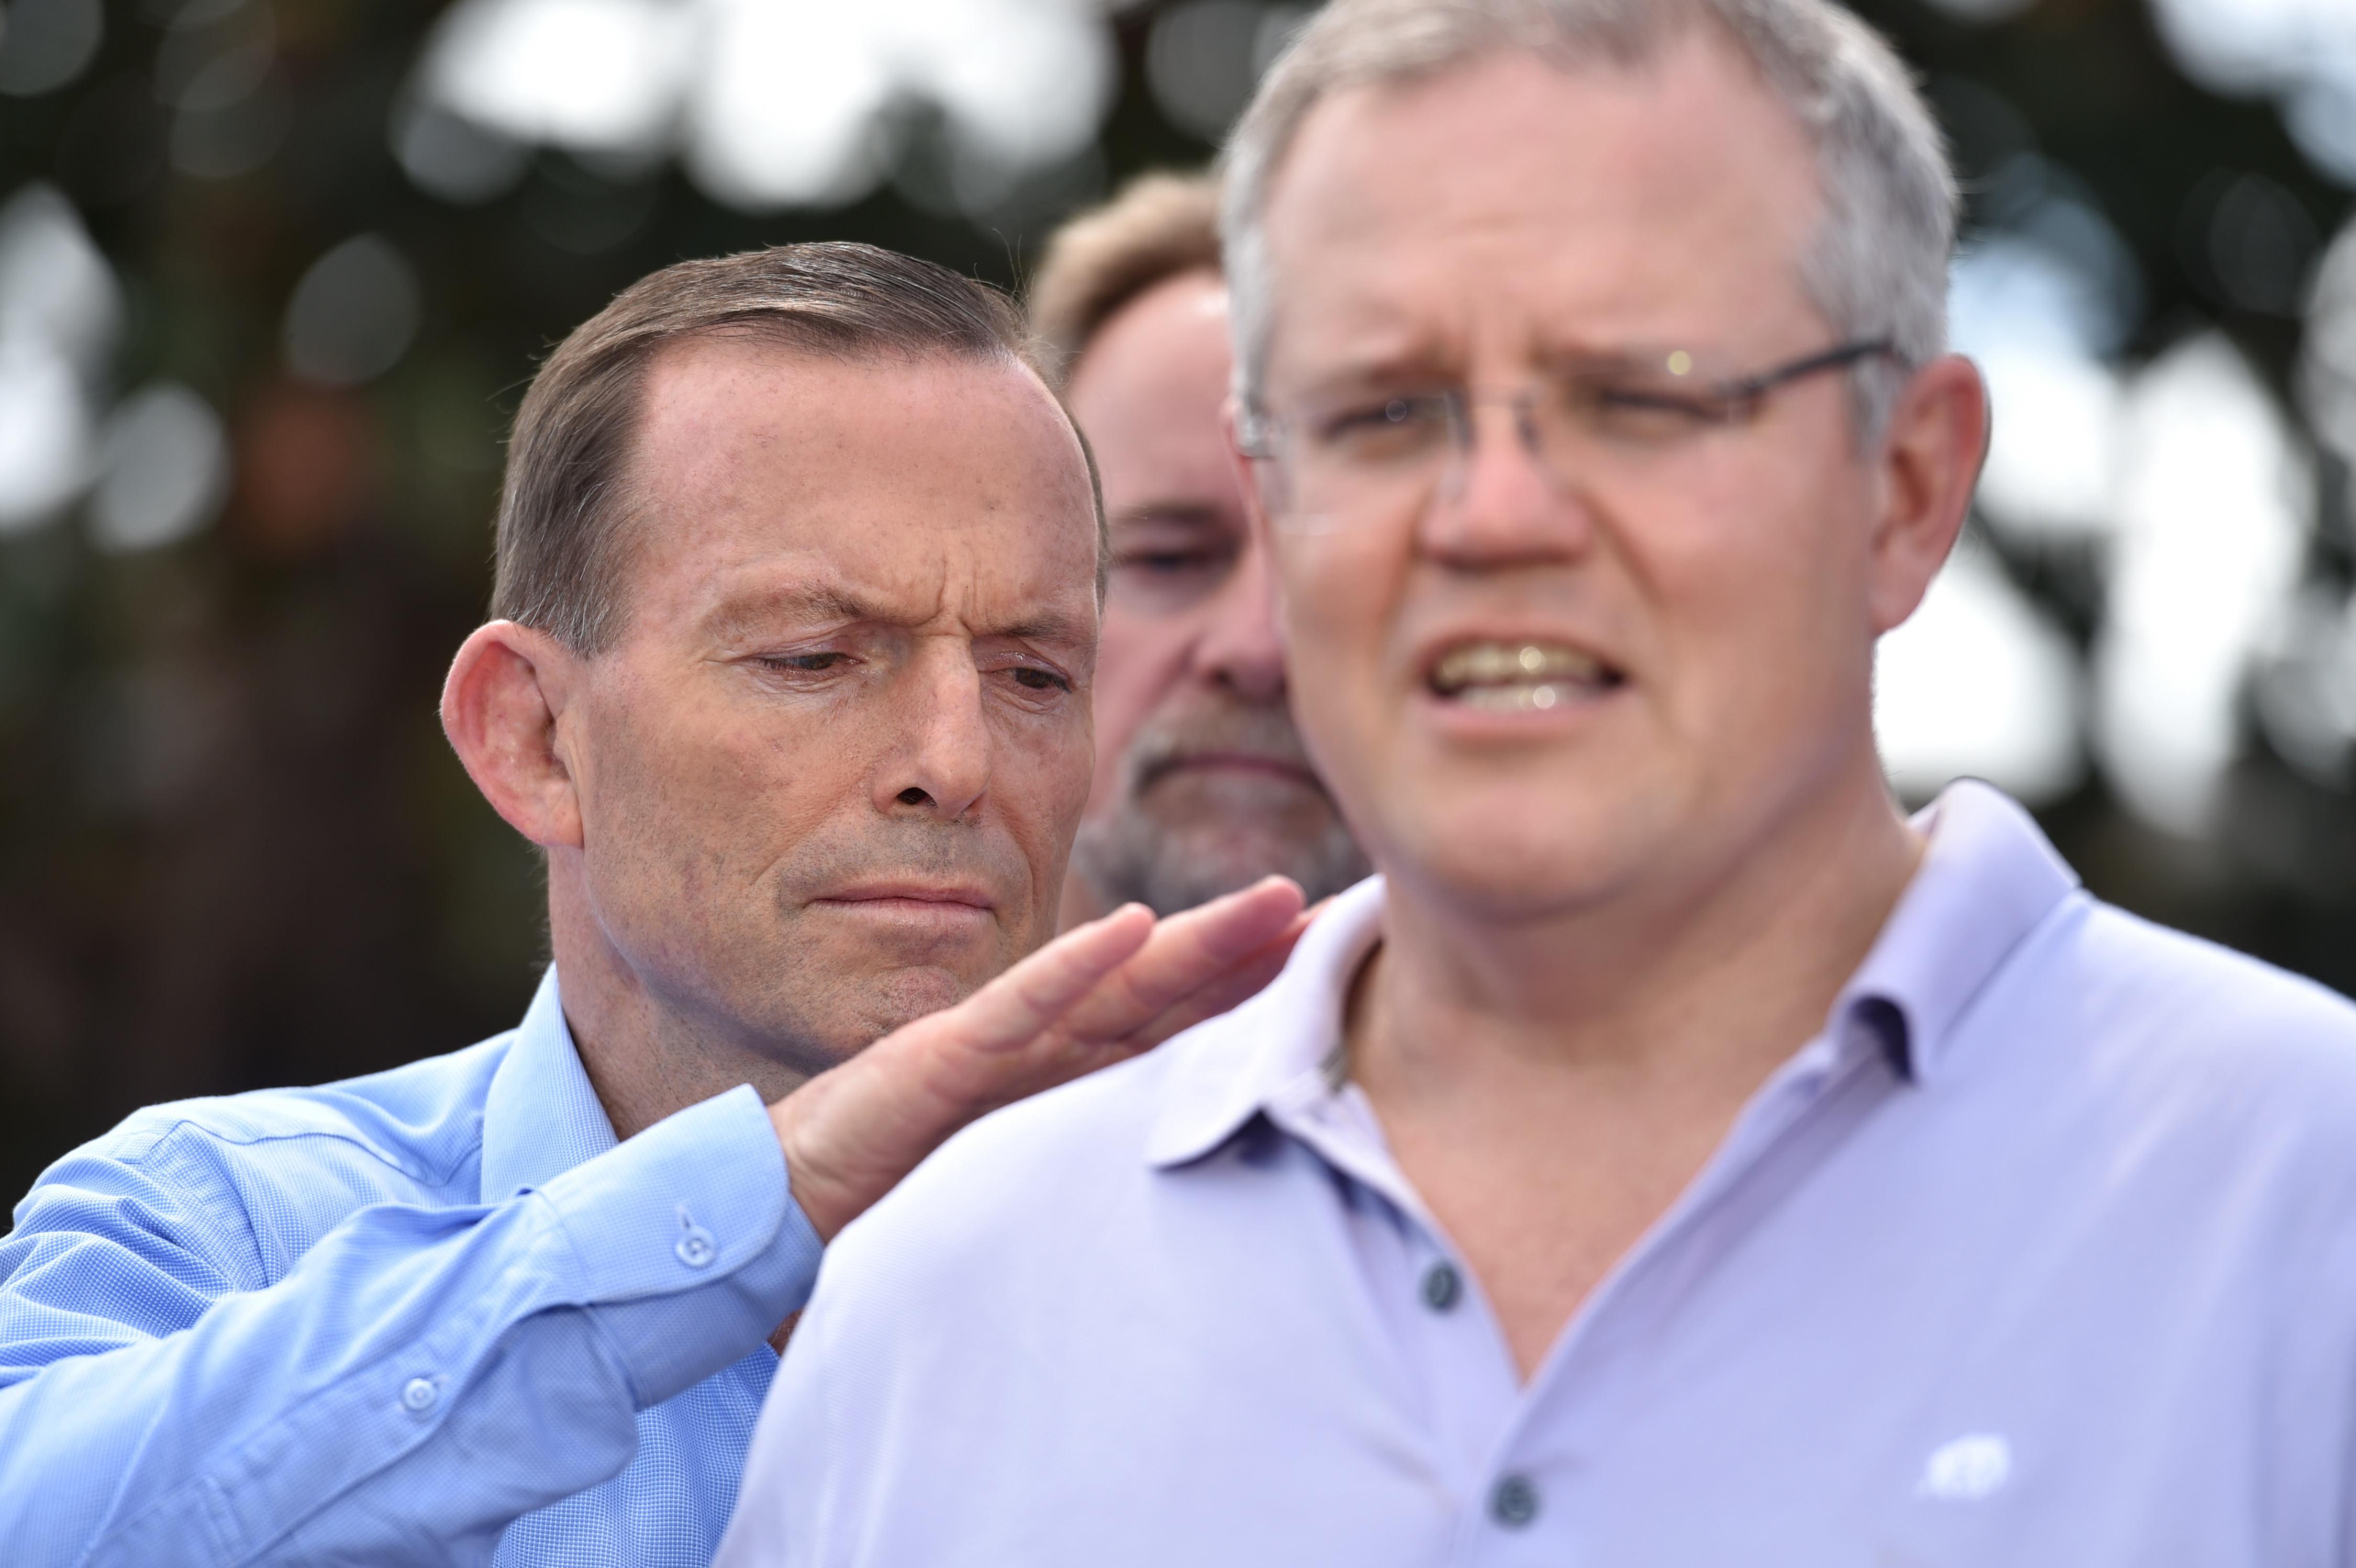 Abbott: A man without borders or station